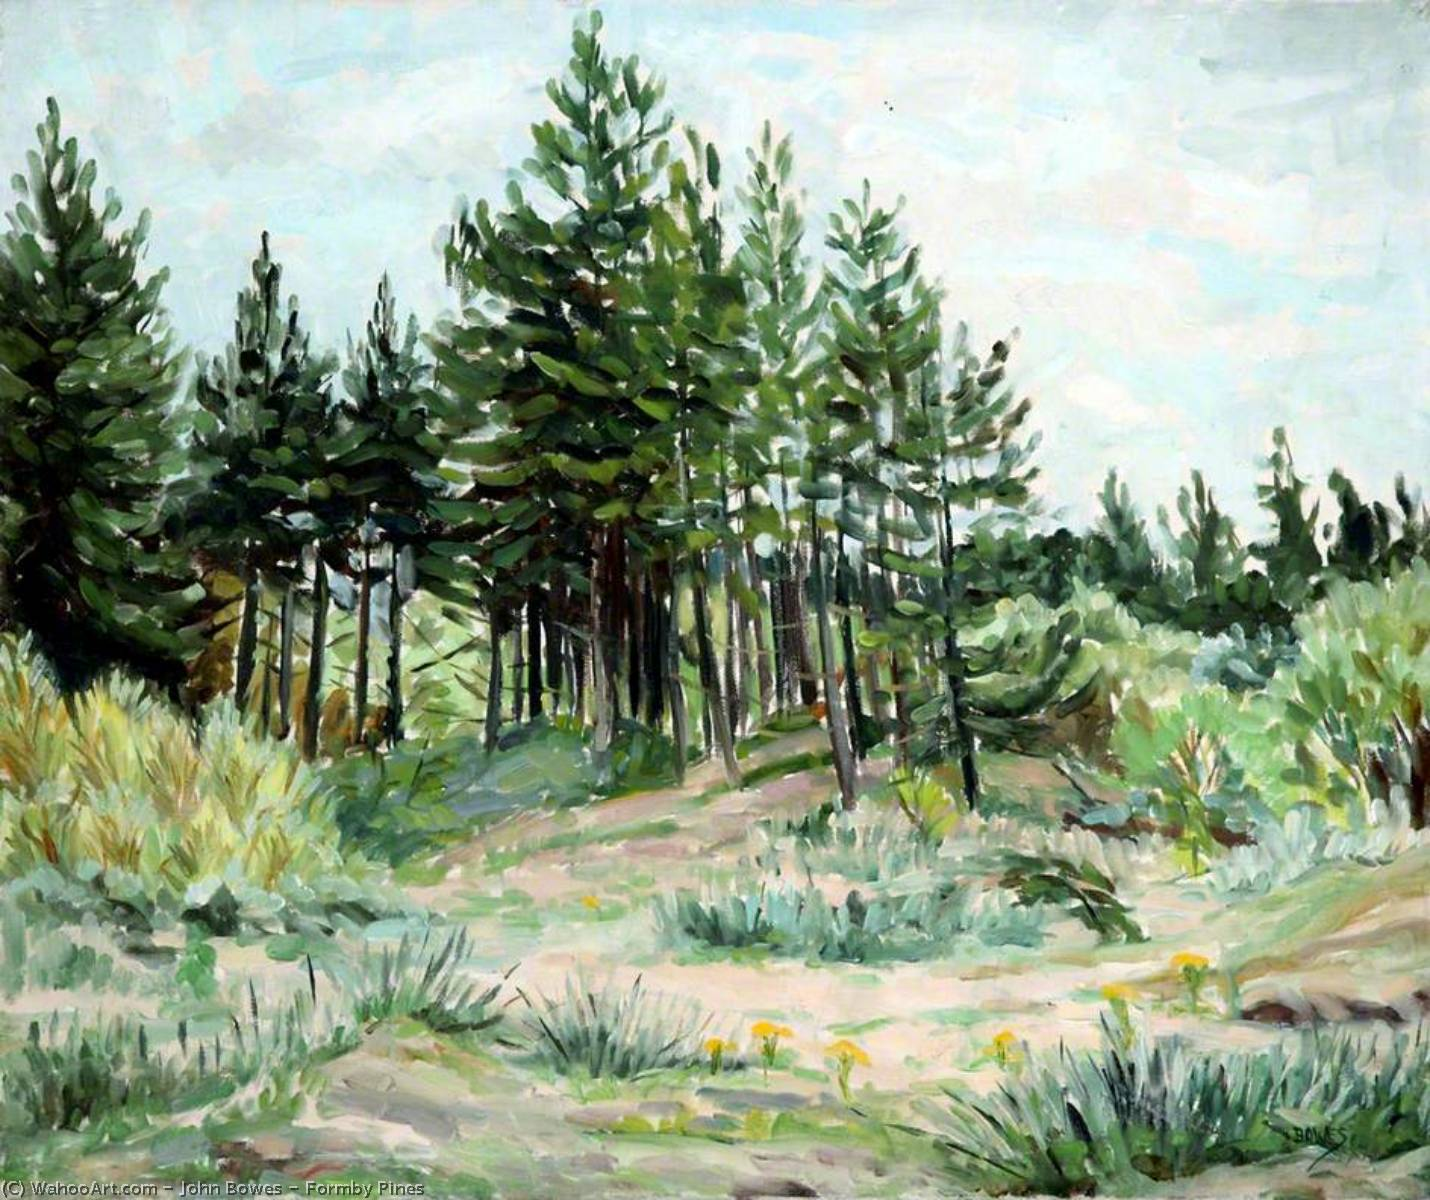 Formby Pines, Oil On Canvas by John Bowes